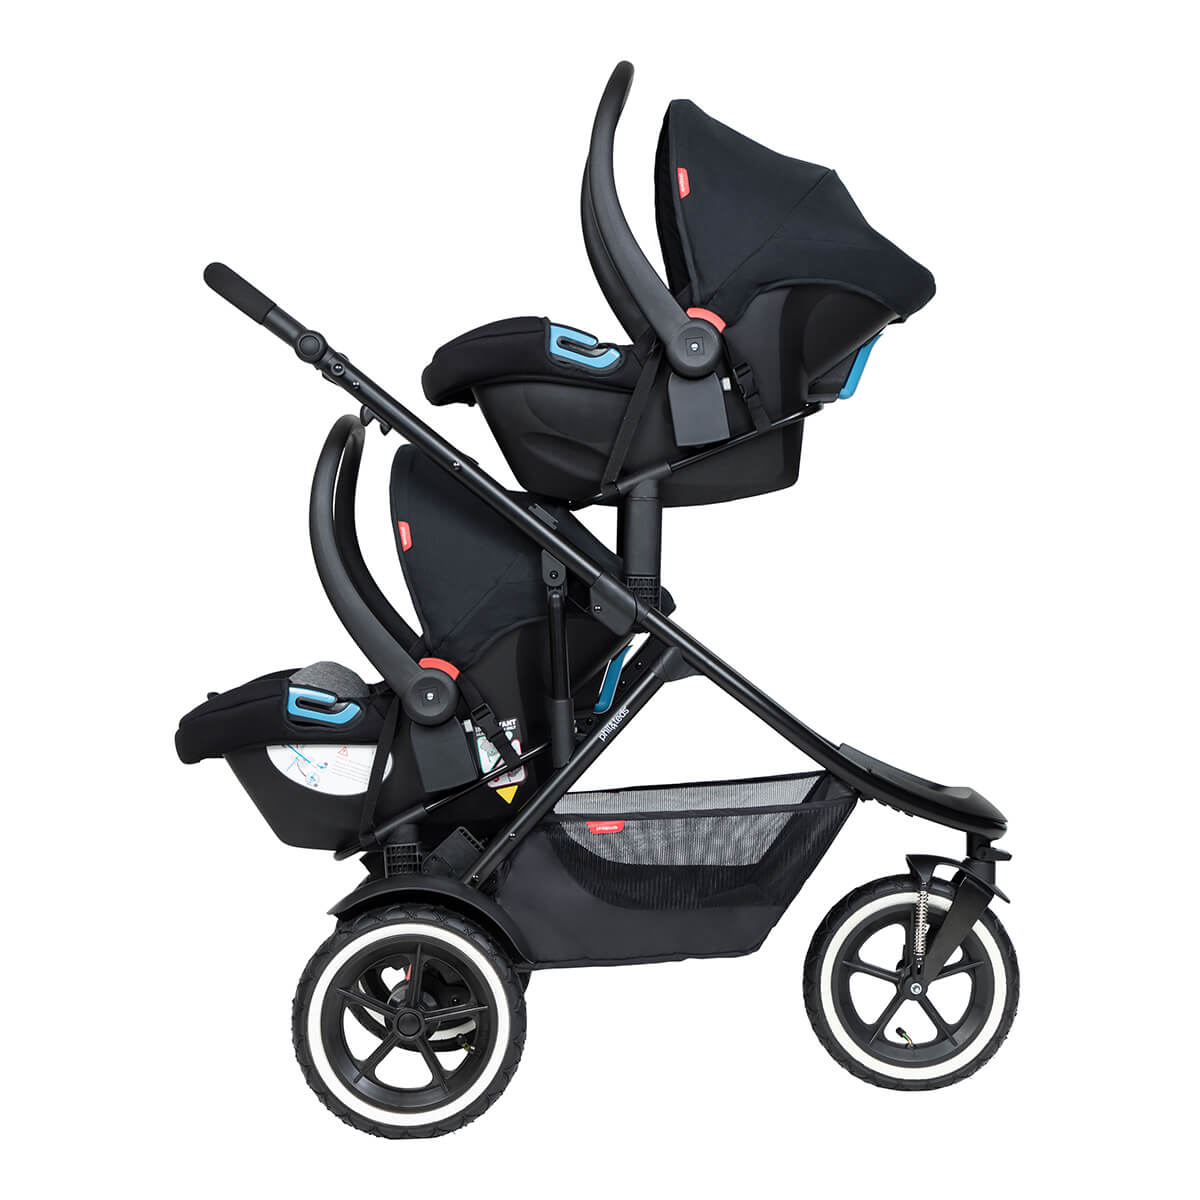 https://cdn.accentuate.io/4509898735693/19466204610754/philteds-sport-buggy-with-double-alpha-travel-system-v1626485360209.jpg?1200x1200